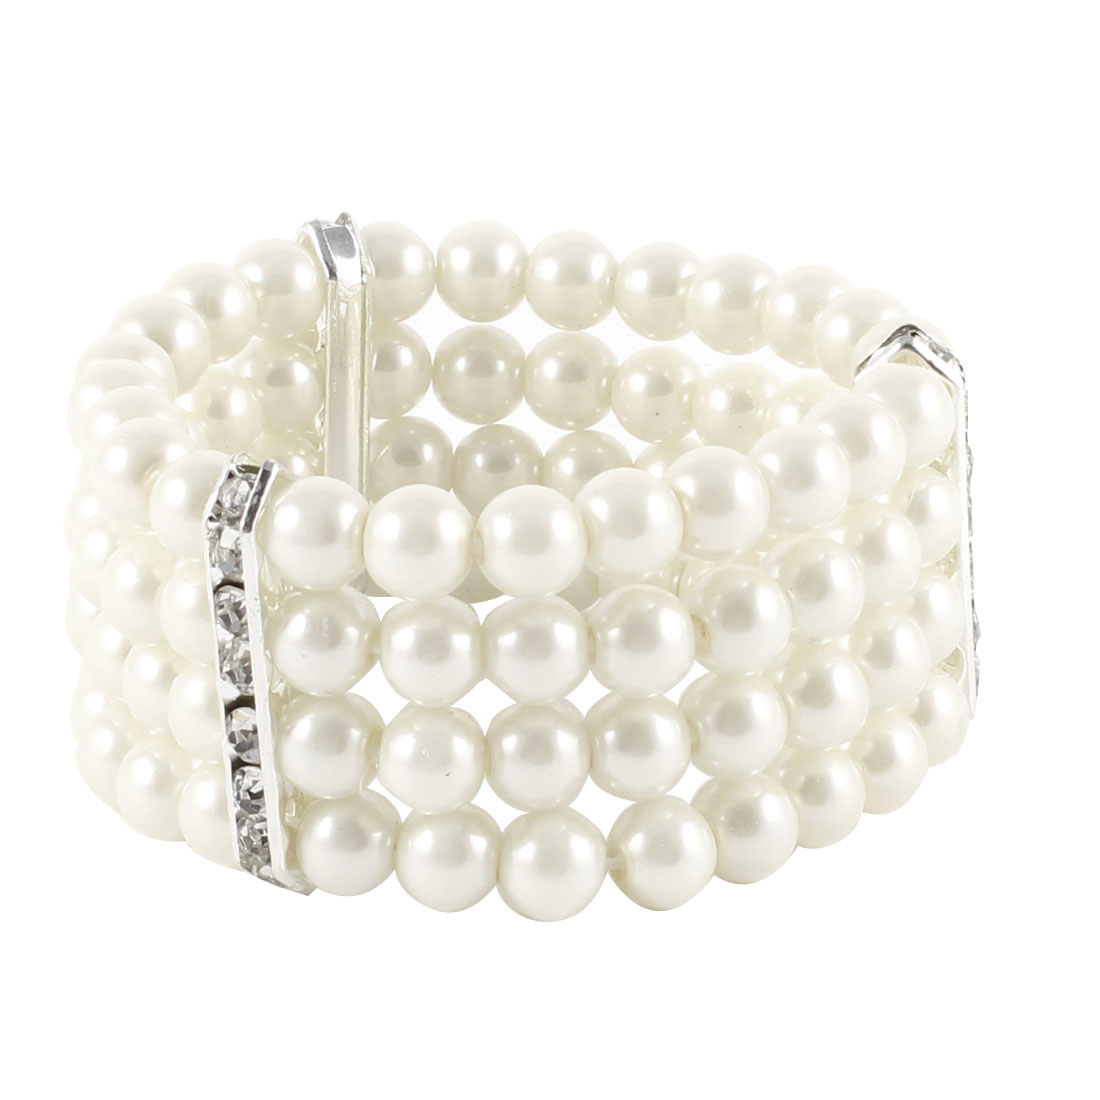 Ladies Jewelry 4 Rows Imitation Pearls Bead Decor Elastic Bracelet Bangle Off White